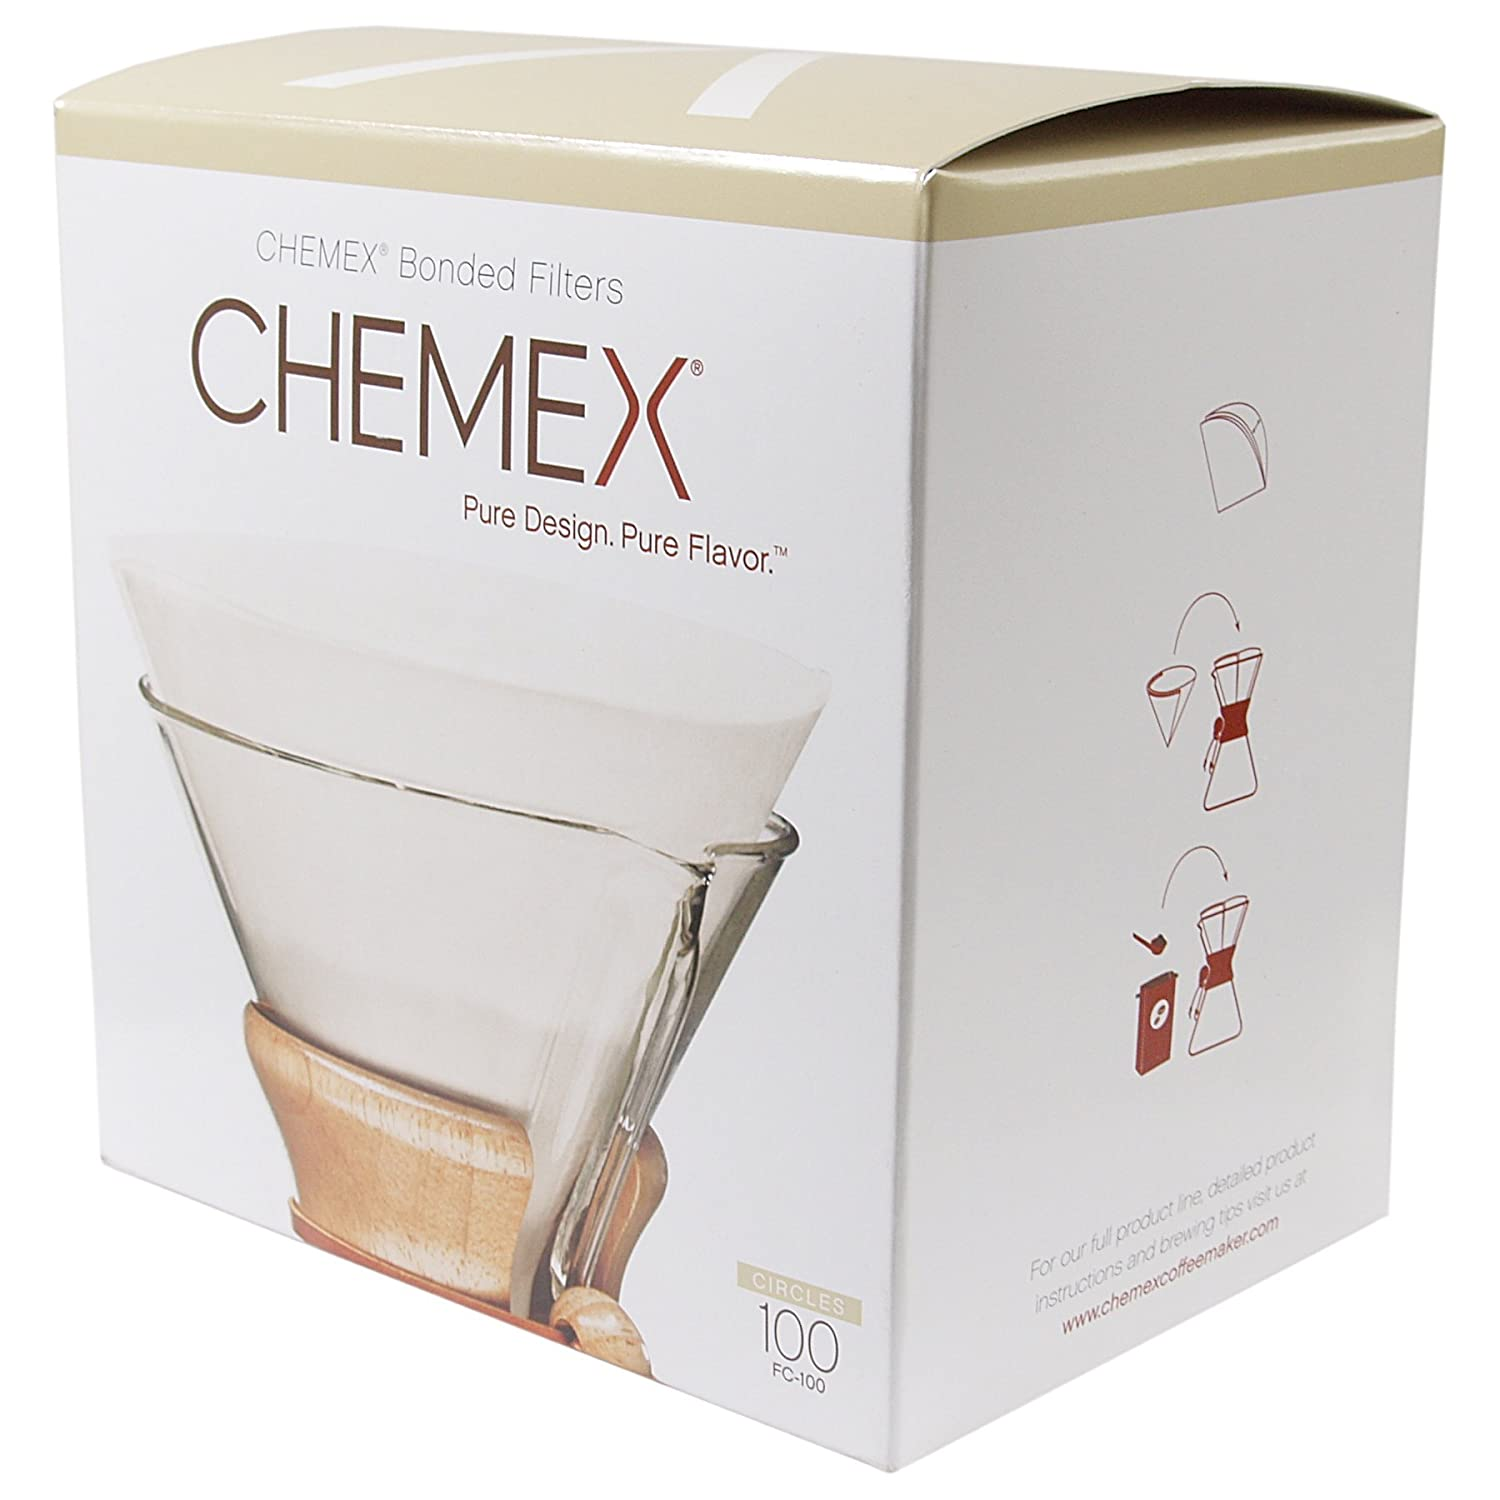 Chemex Classic Coffee Filters, Squares, 100 ct - Exclusive Packaging Chemex Coffee Maker FS-100